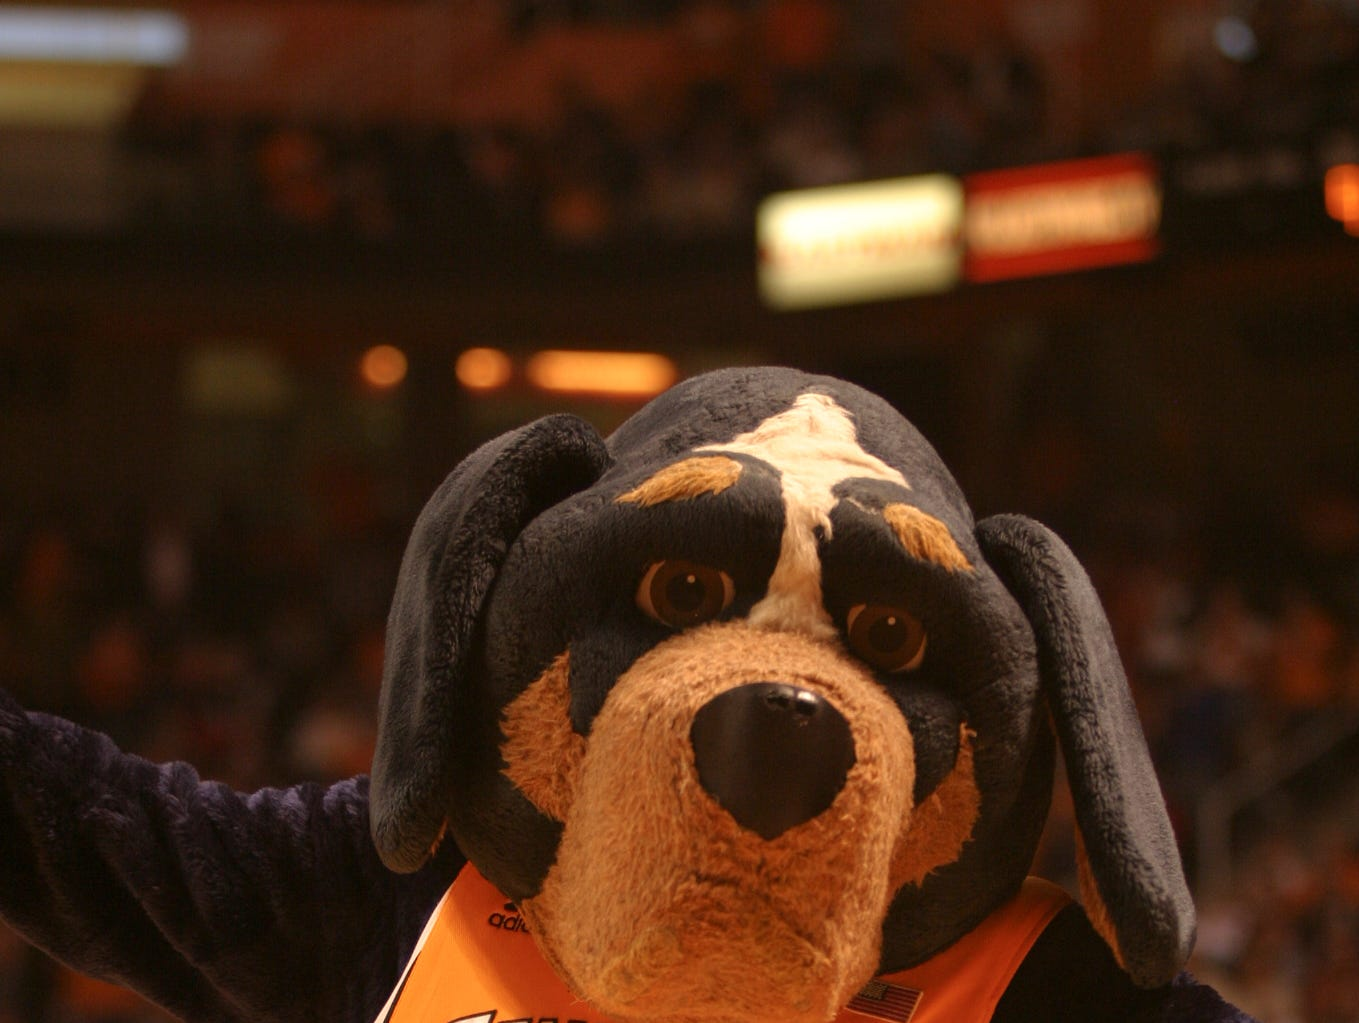 Jamie Meadows, owner of Knoxville-based Character Impressions LLC, was the University of Tennessee's Smokey mascot from 1999 to 2002. Meadows has opened a business to market the use of mascots to businesses and has been inducted into the Mascot Hall of Fame.